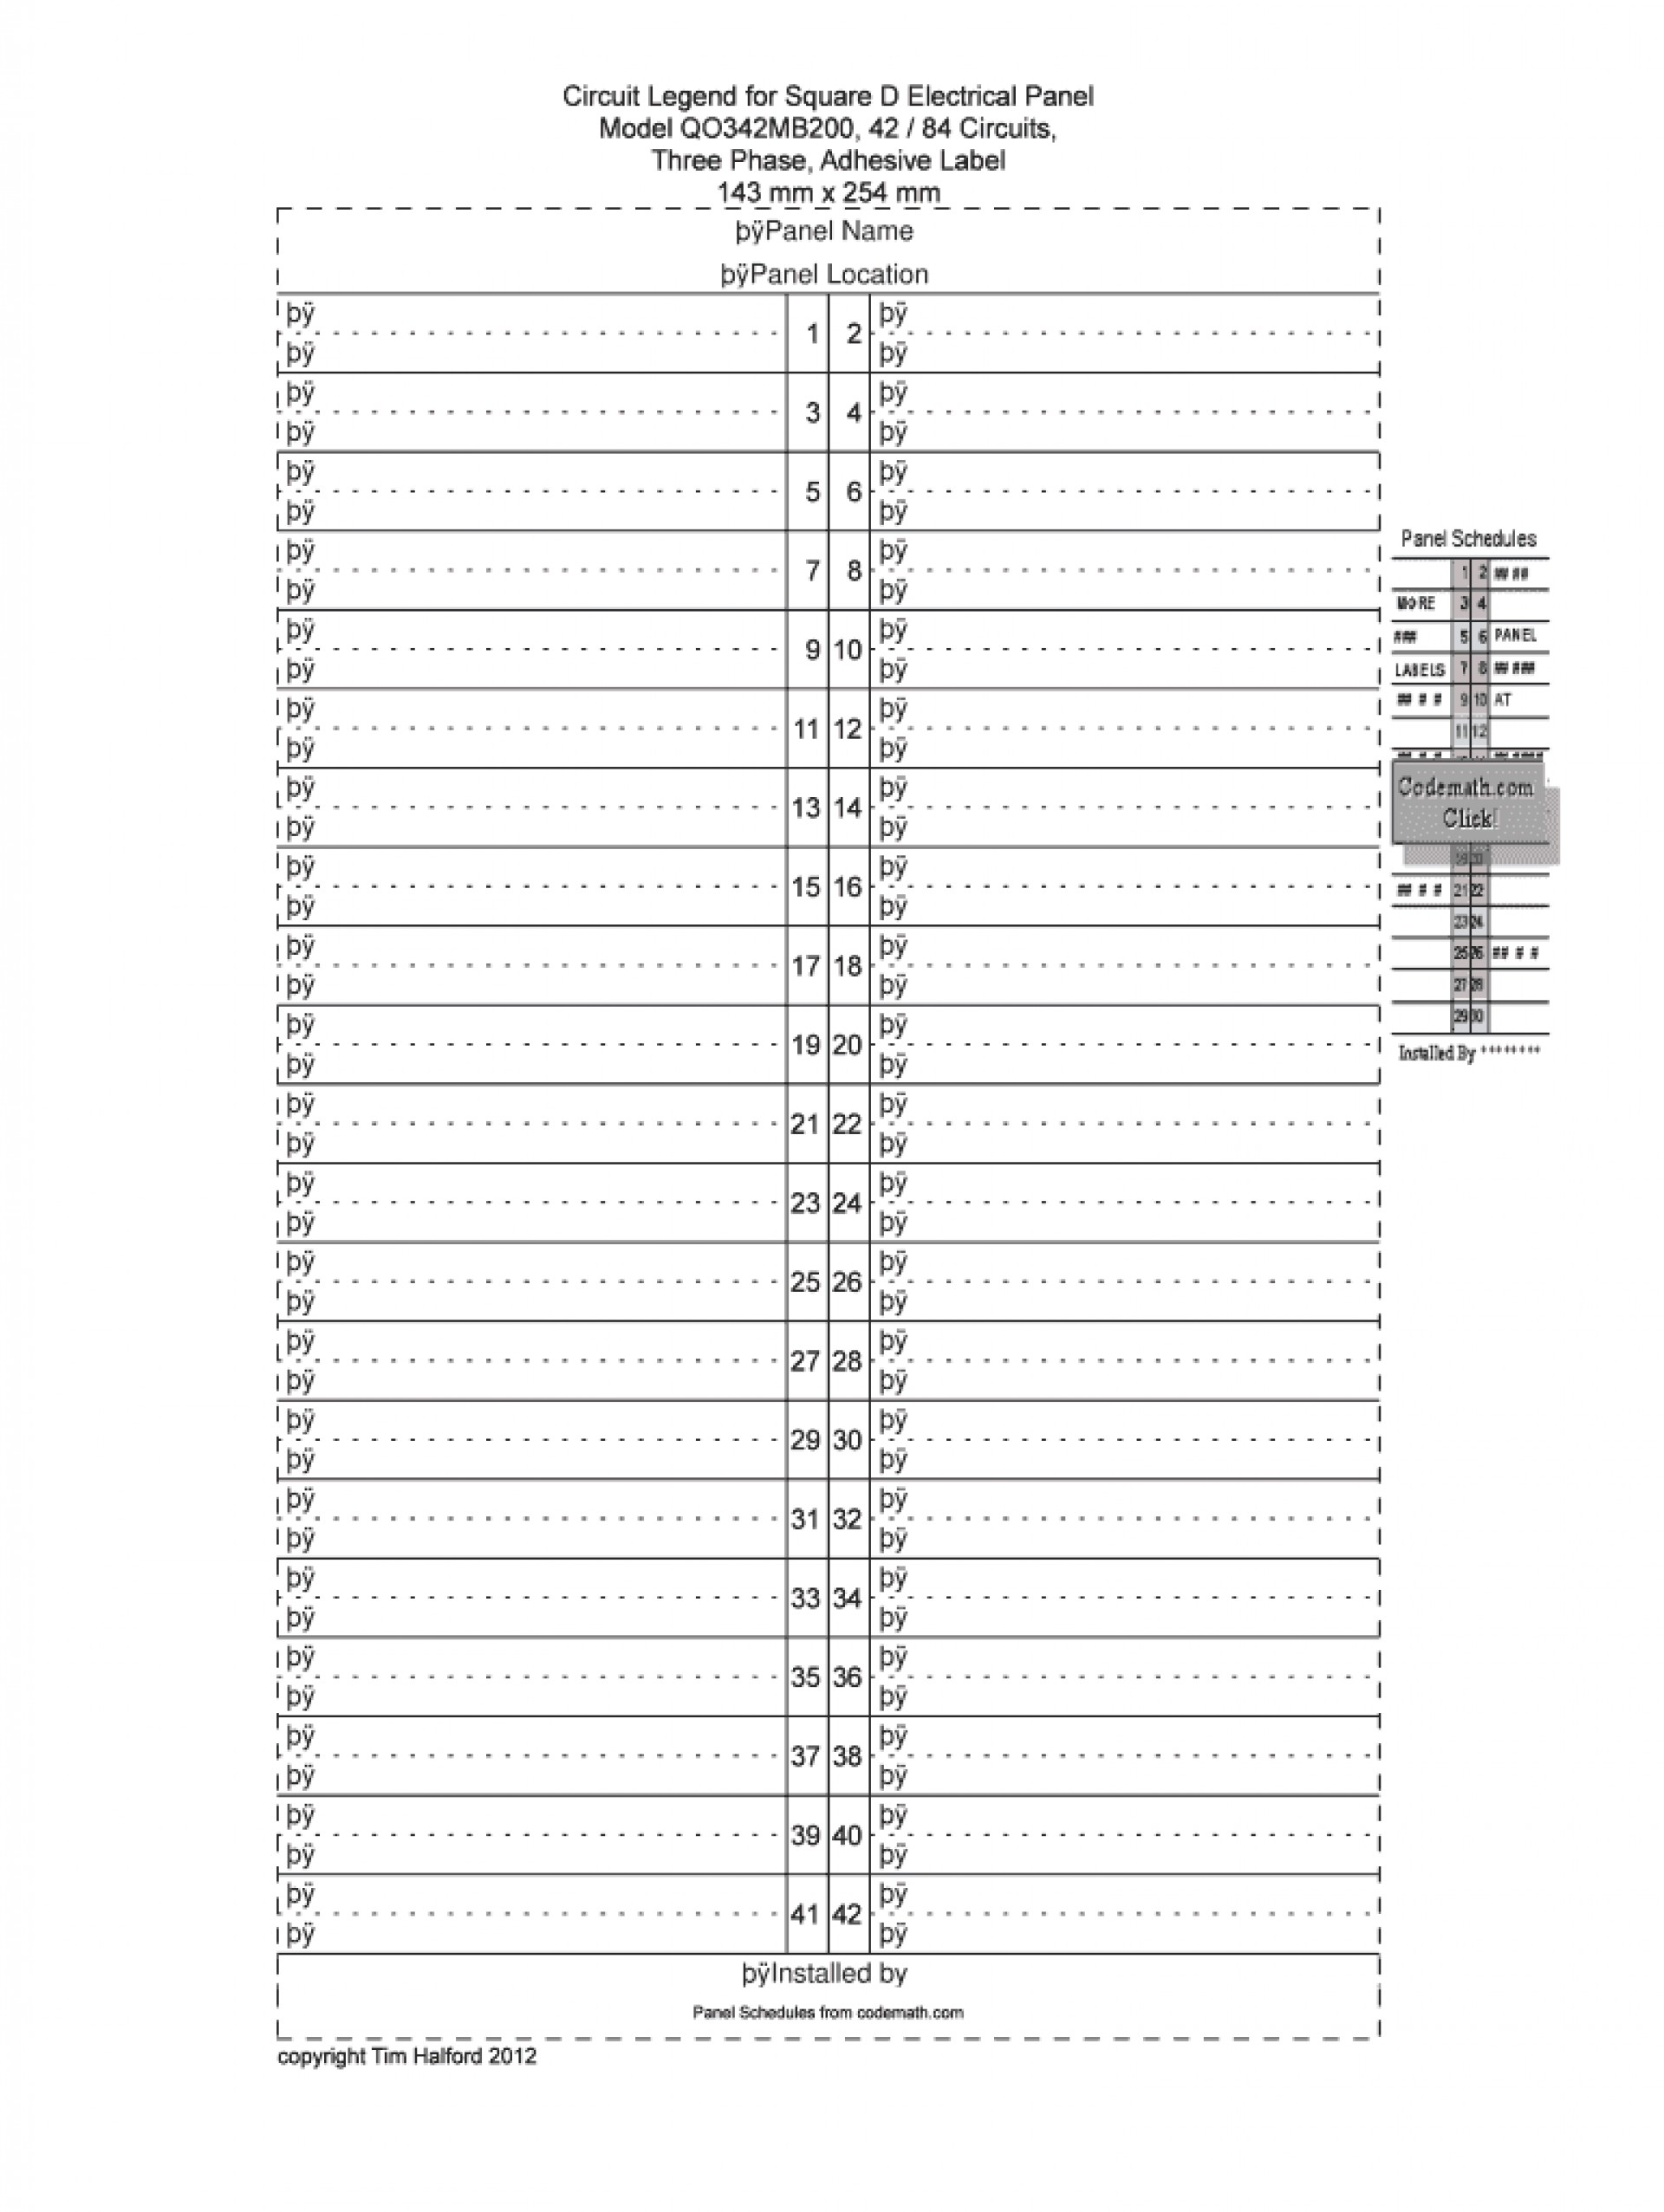 Circuit Breaker Box Label Template Excel